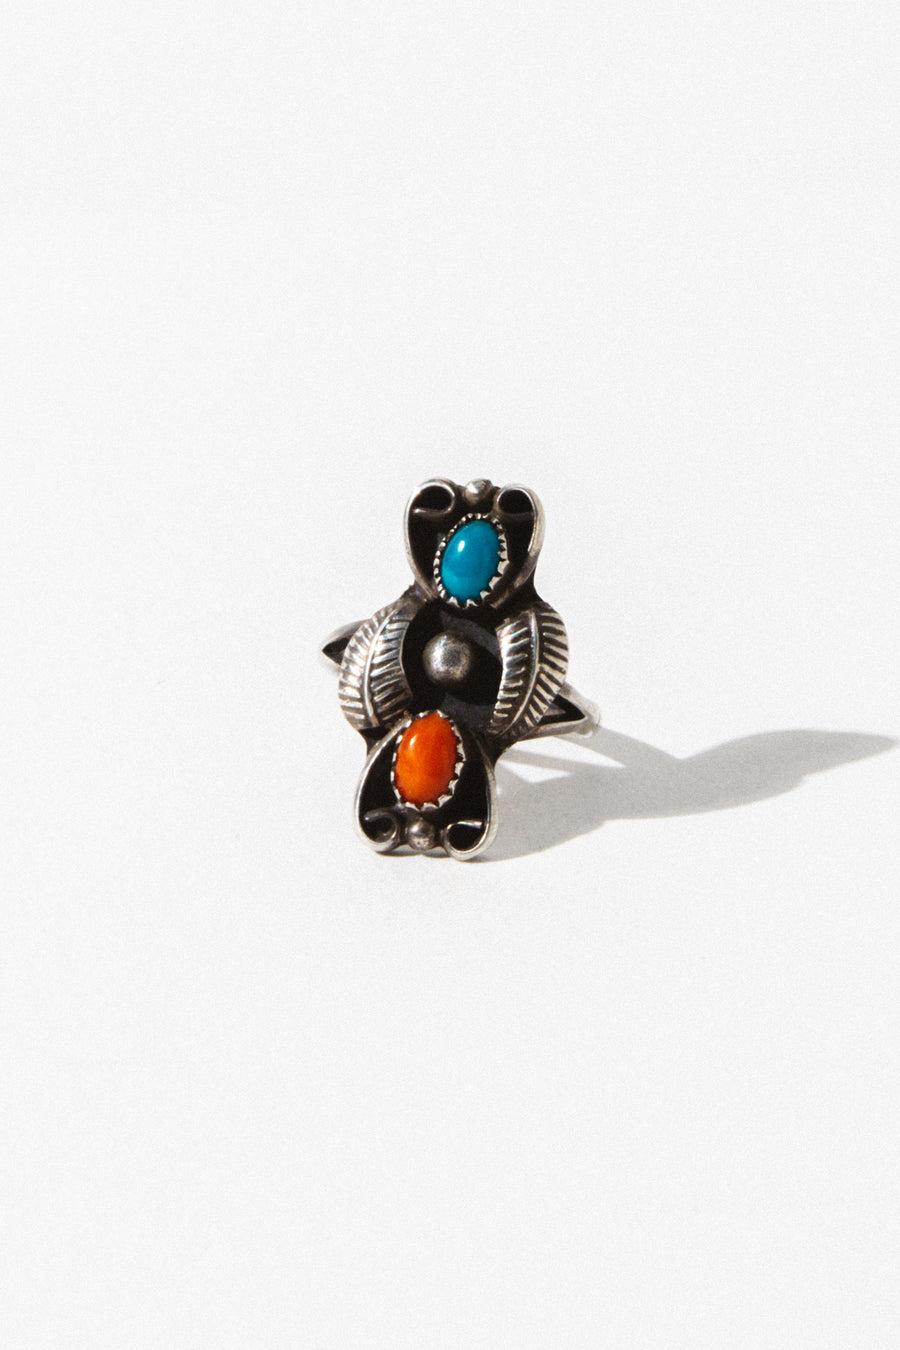 Vintage Native American Jewelry US 7.5 / Silver Rainbow Stone Vintage Ring